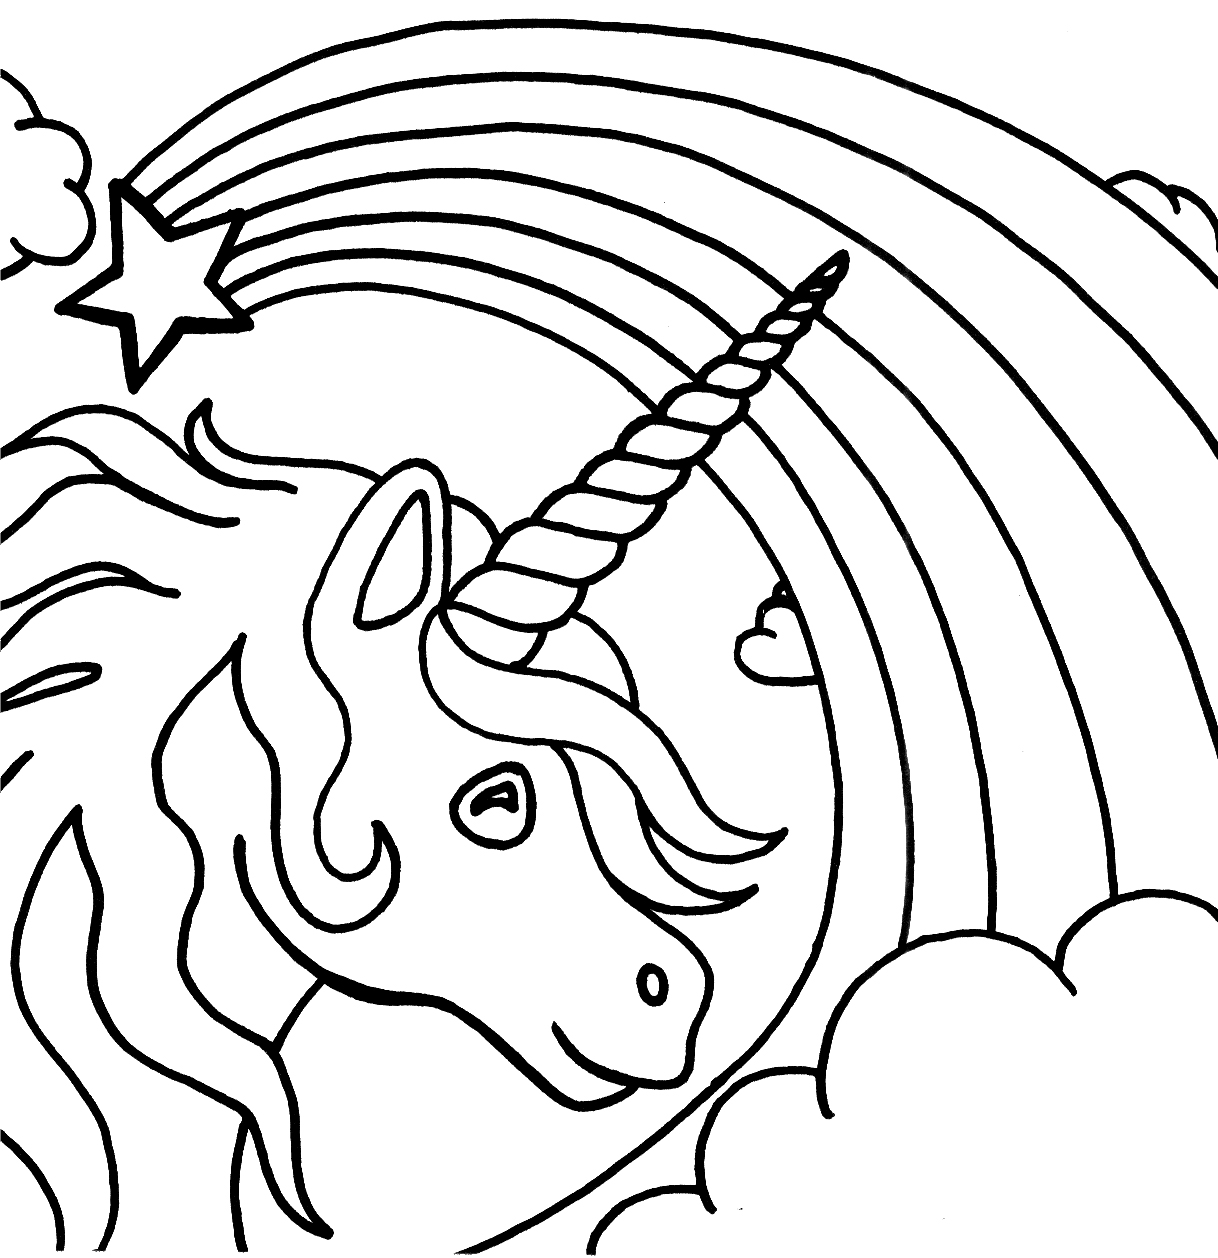 Best Website For Free Coloring Pages : Unicorn coloring pages to download and print for free